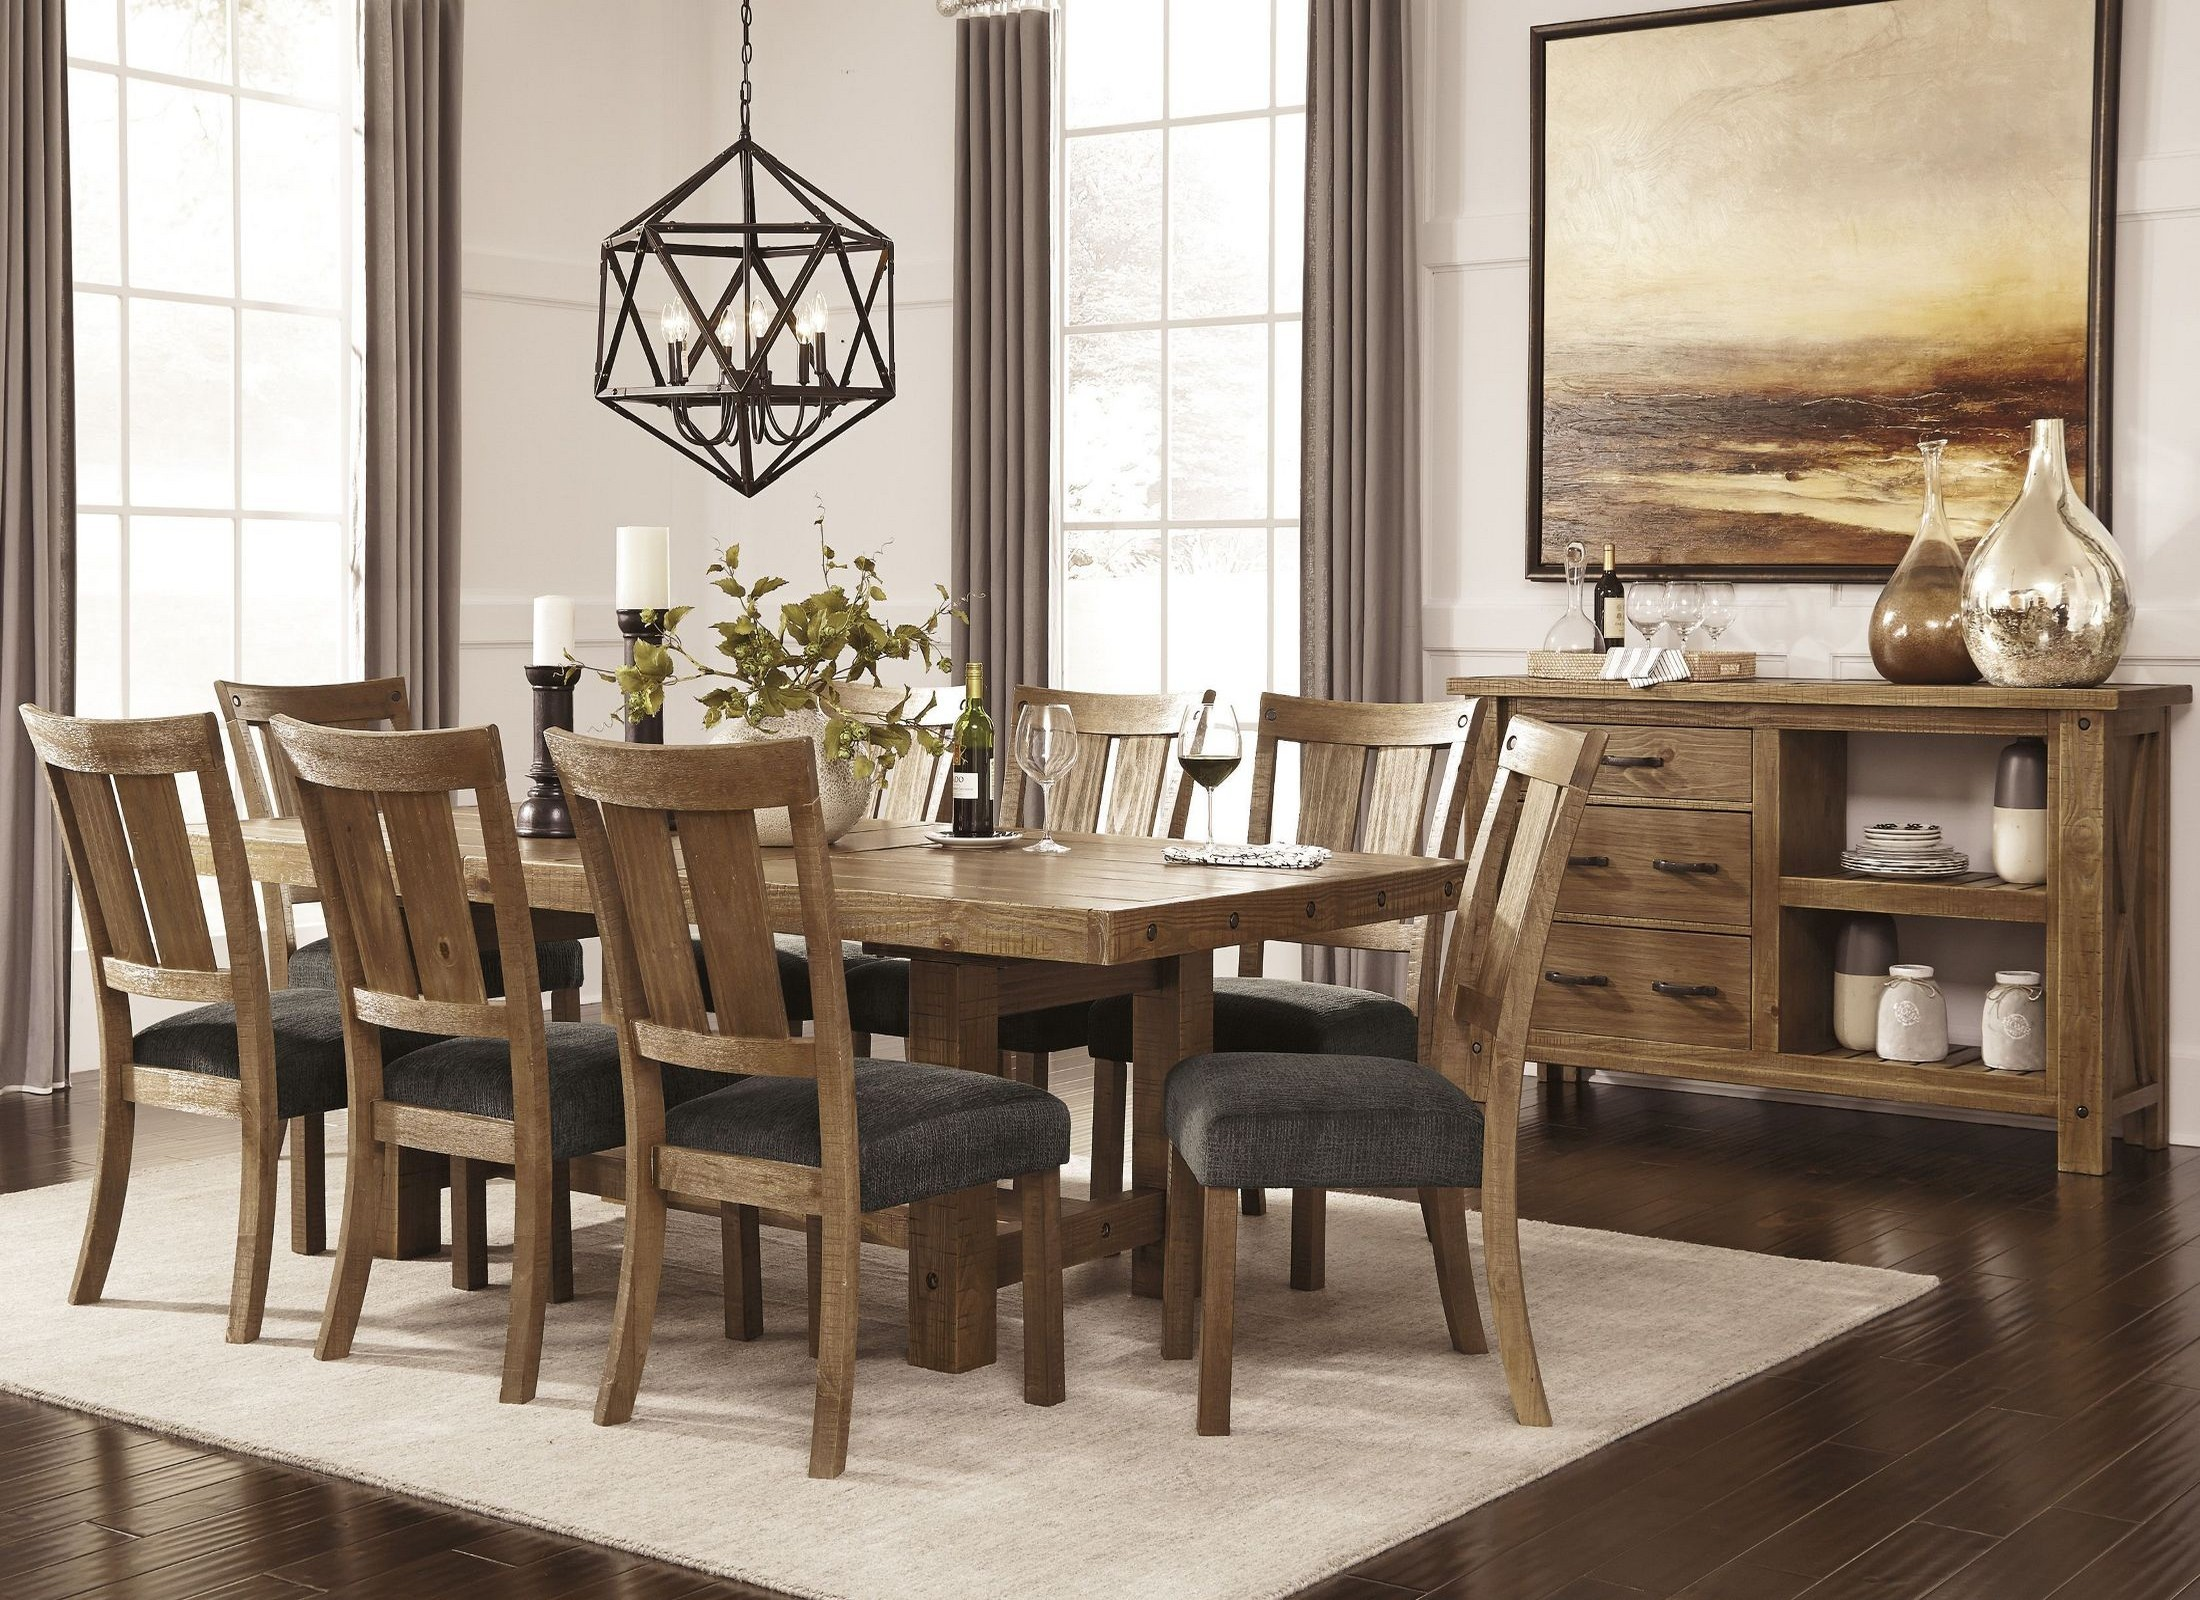 Grey Dining Room Chairs: Tamilo Gray/Brown Rectangular Extendable Dining Room Set